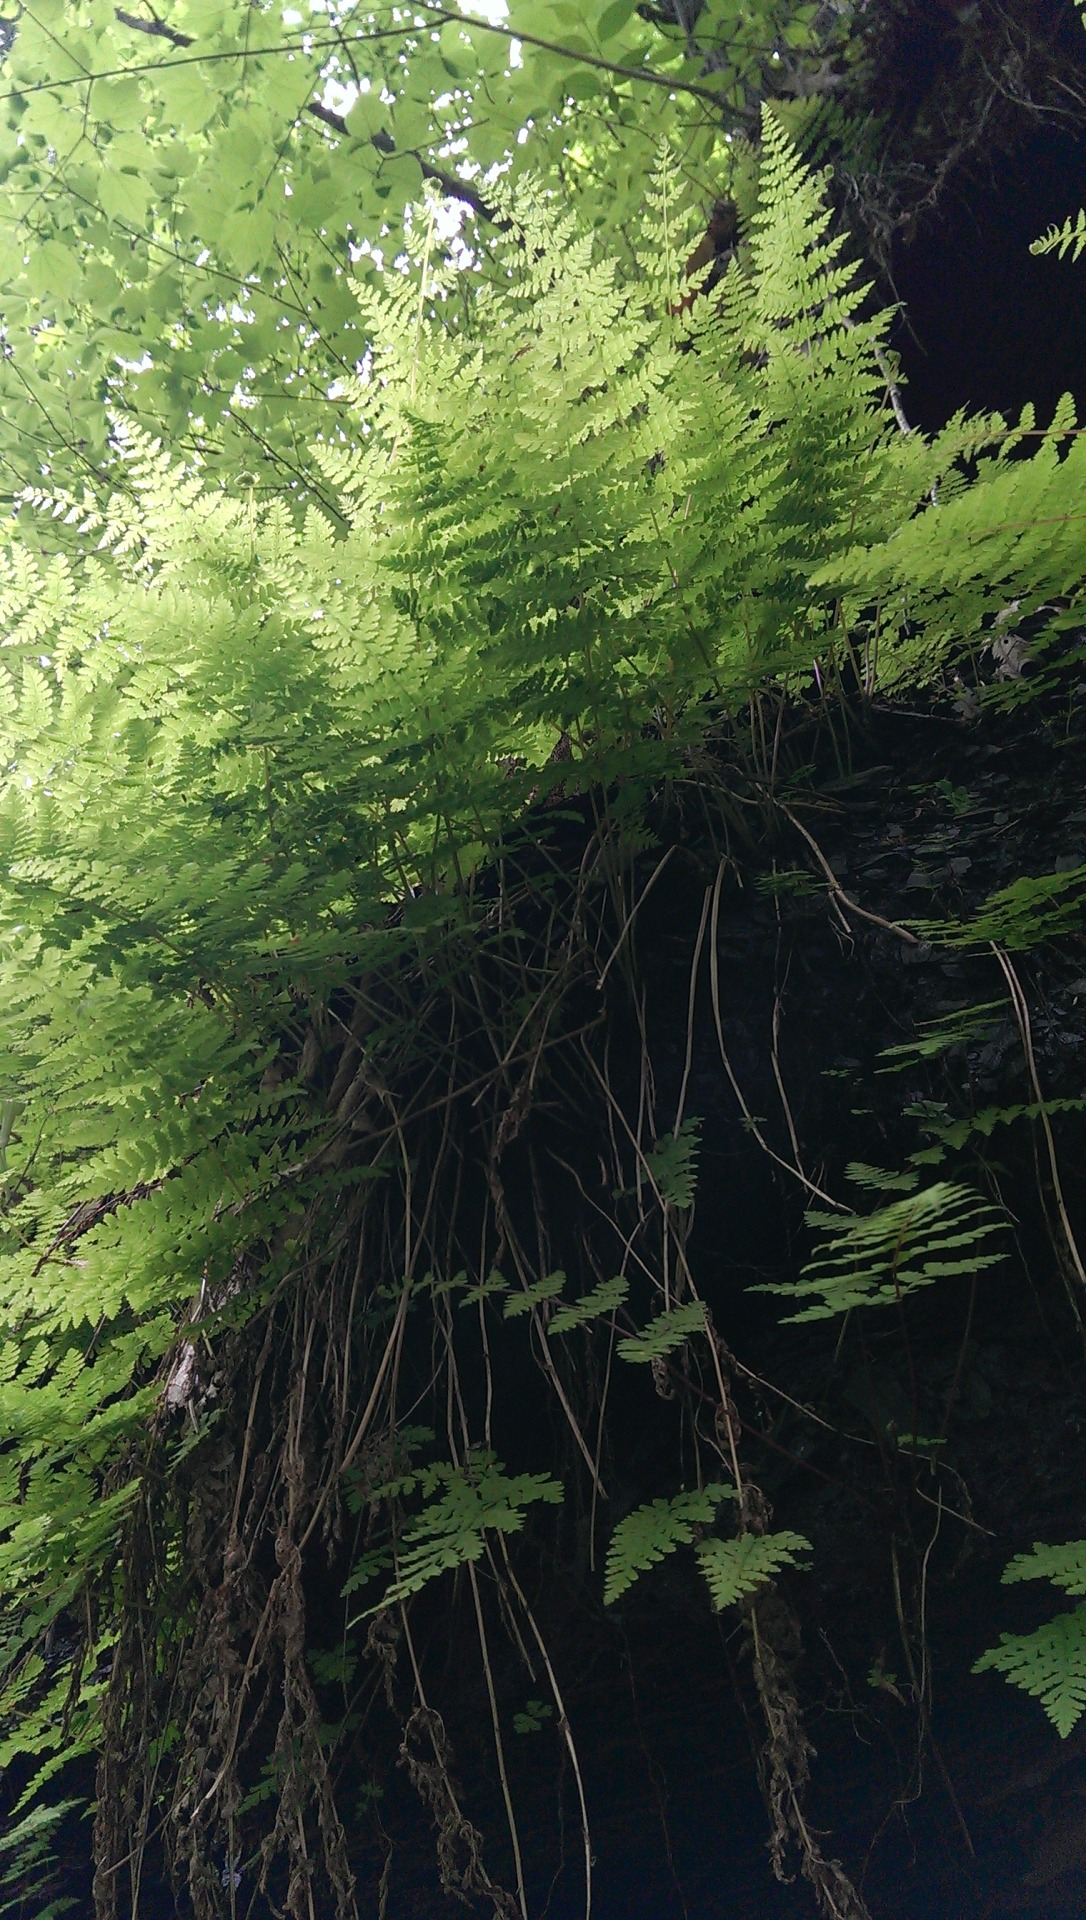 ferns, today